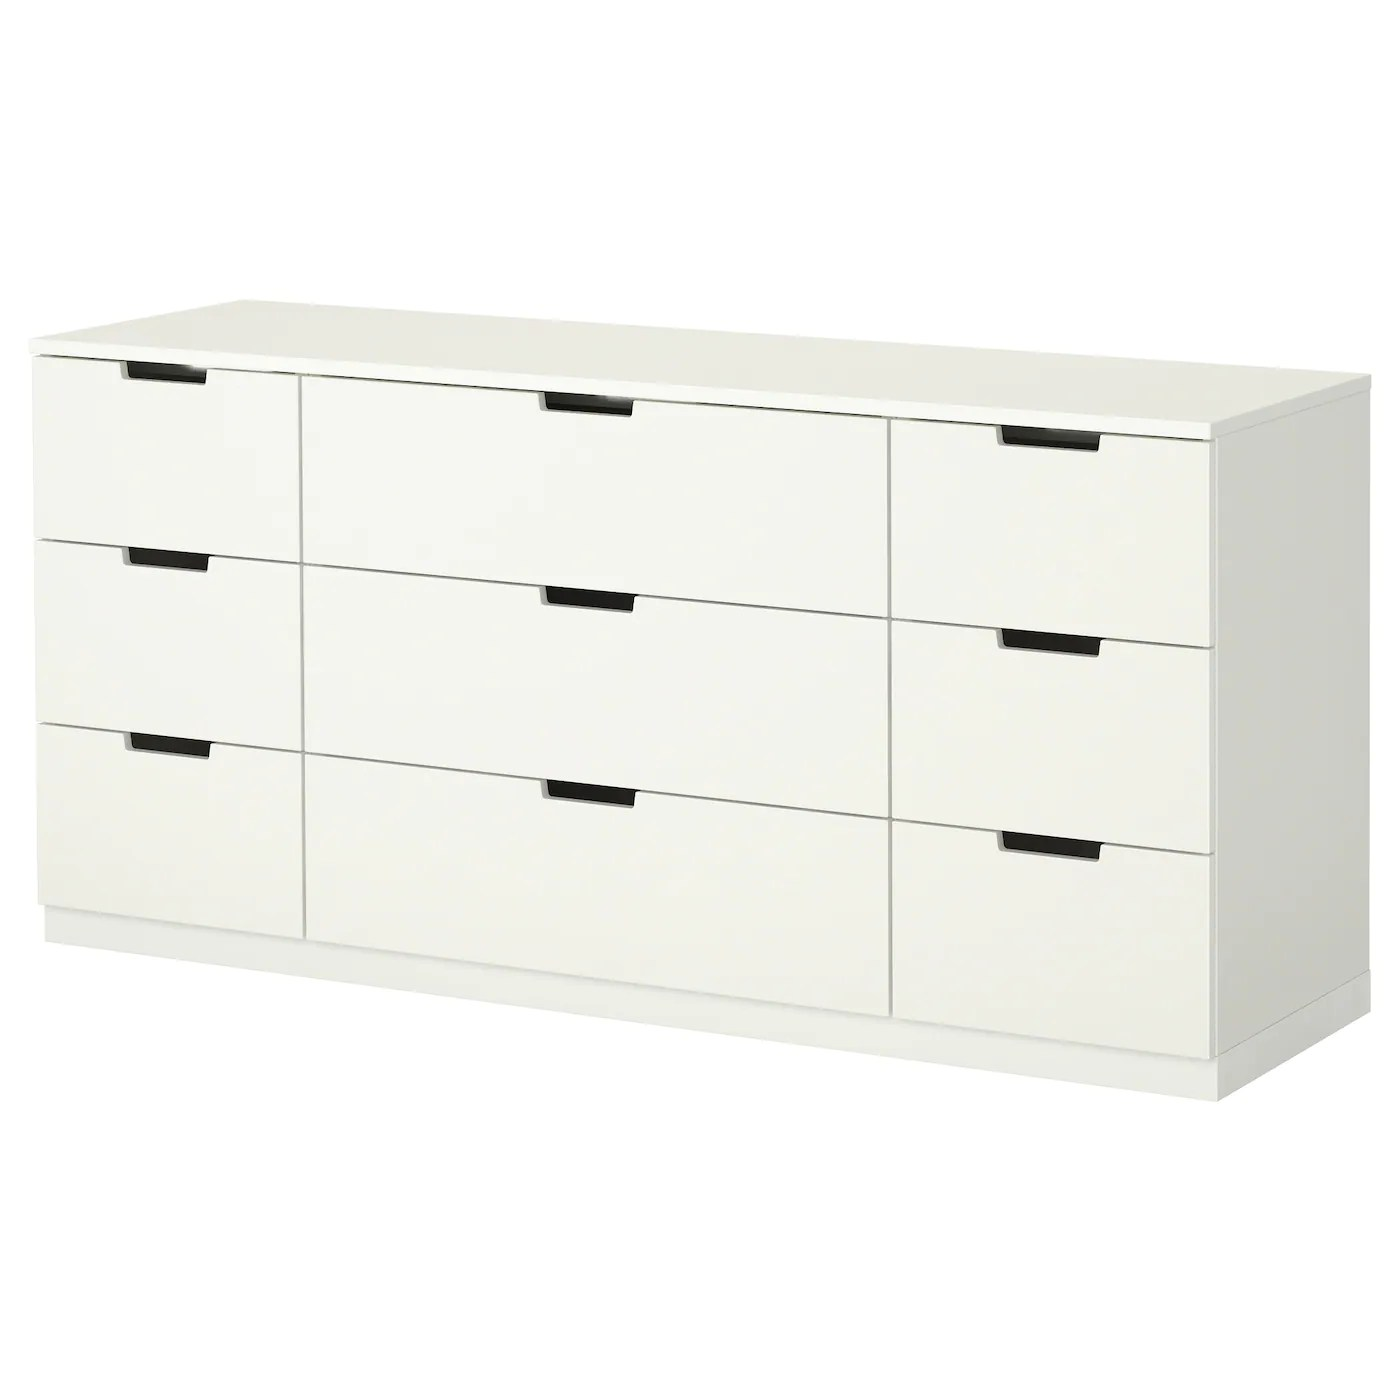 Kast 80 Cm Breed 40 Diep Nordli Chest Of 9 Drawers White 160x75 Cm Ikea